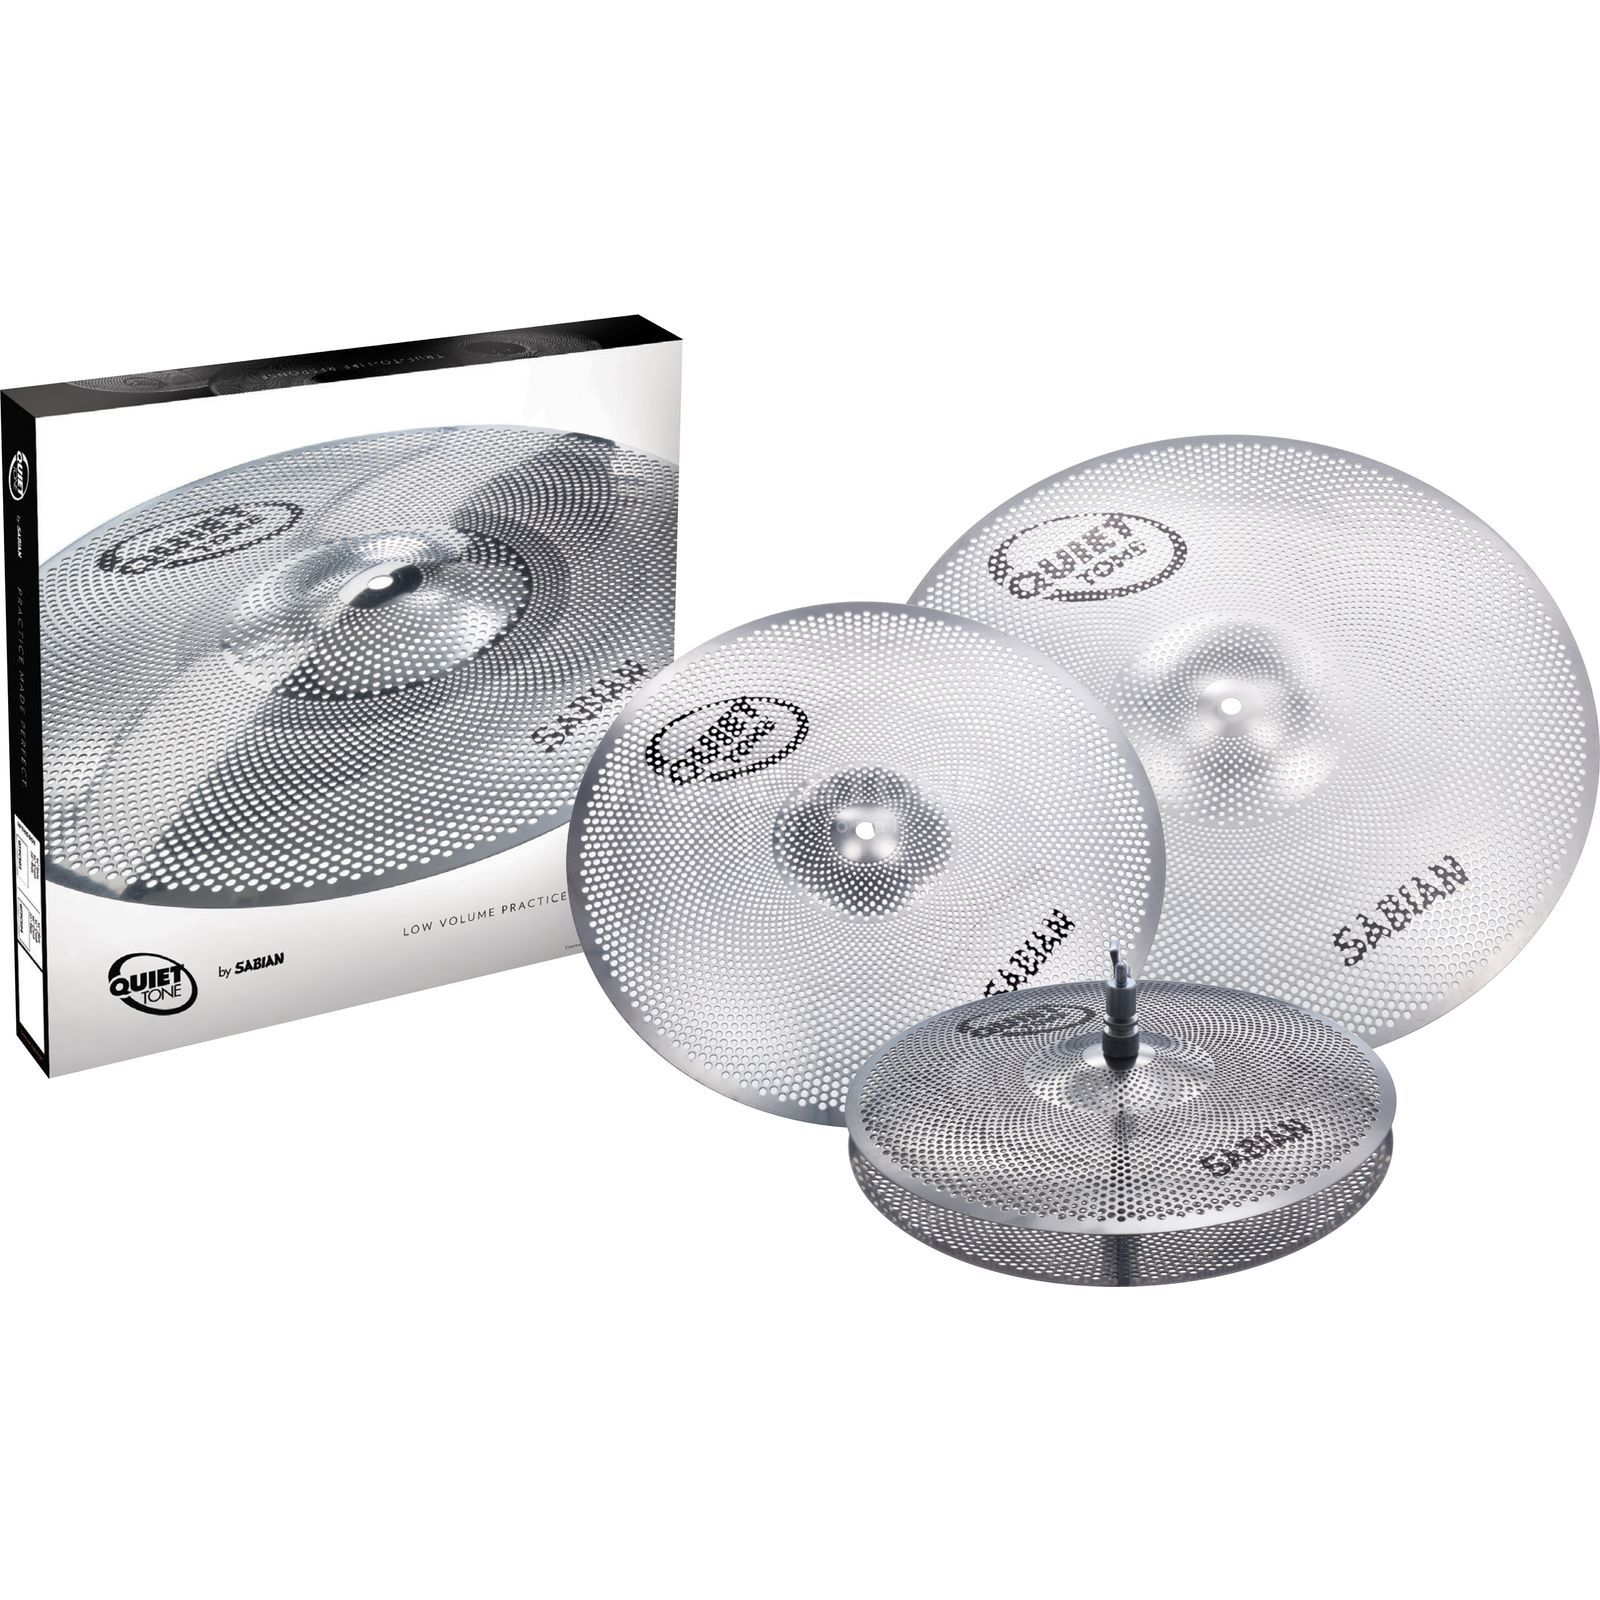 Sabian Quiet Tone Set QTP503 Product Image